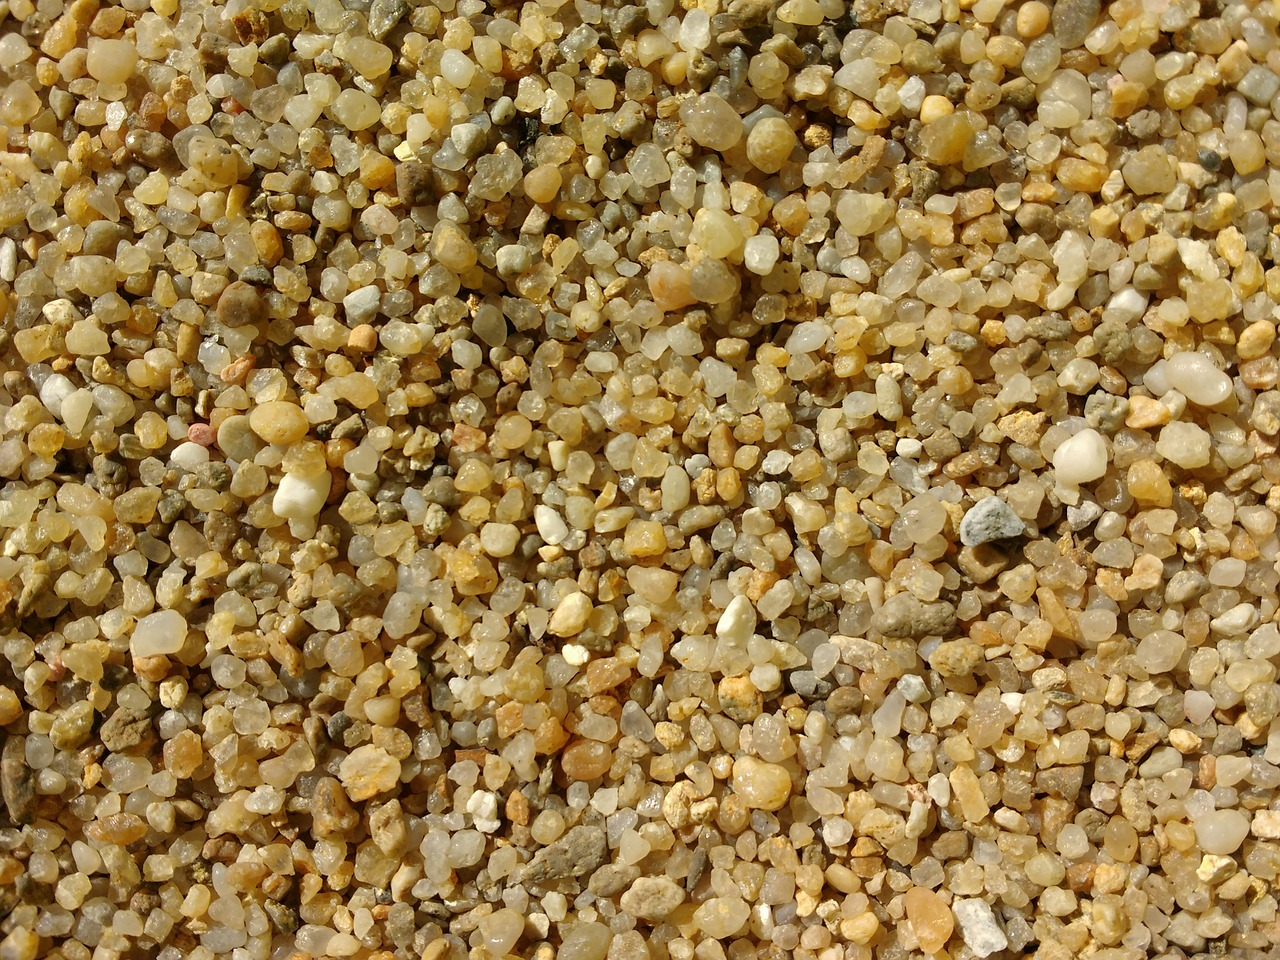 grains of sand,many,pattern,texture,grains,sand,quartz,quartz sand,free pictures, free photos, free images, royalty free, free illustrations, public domain